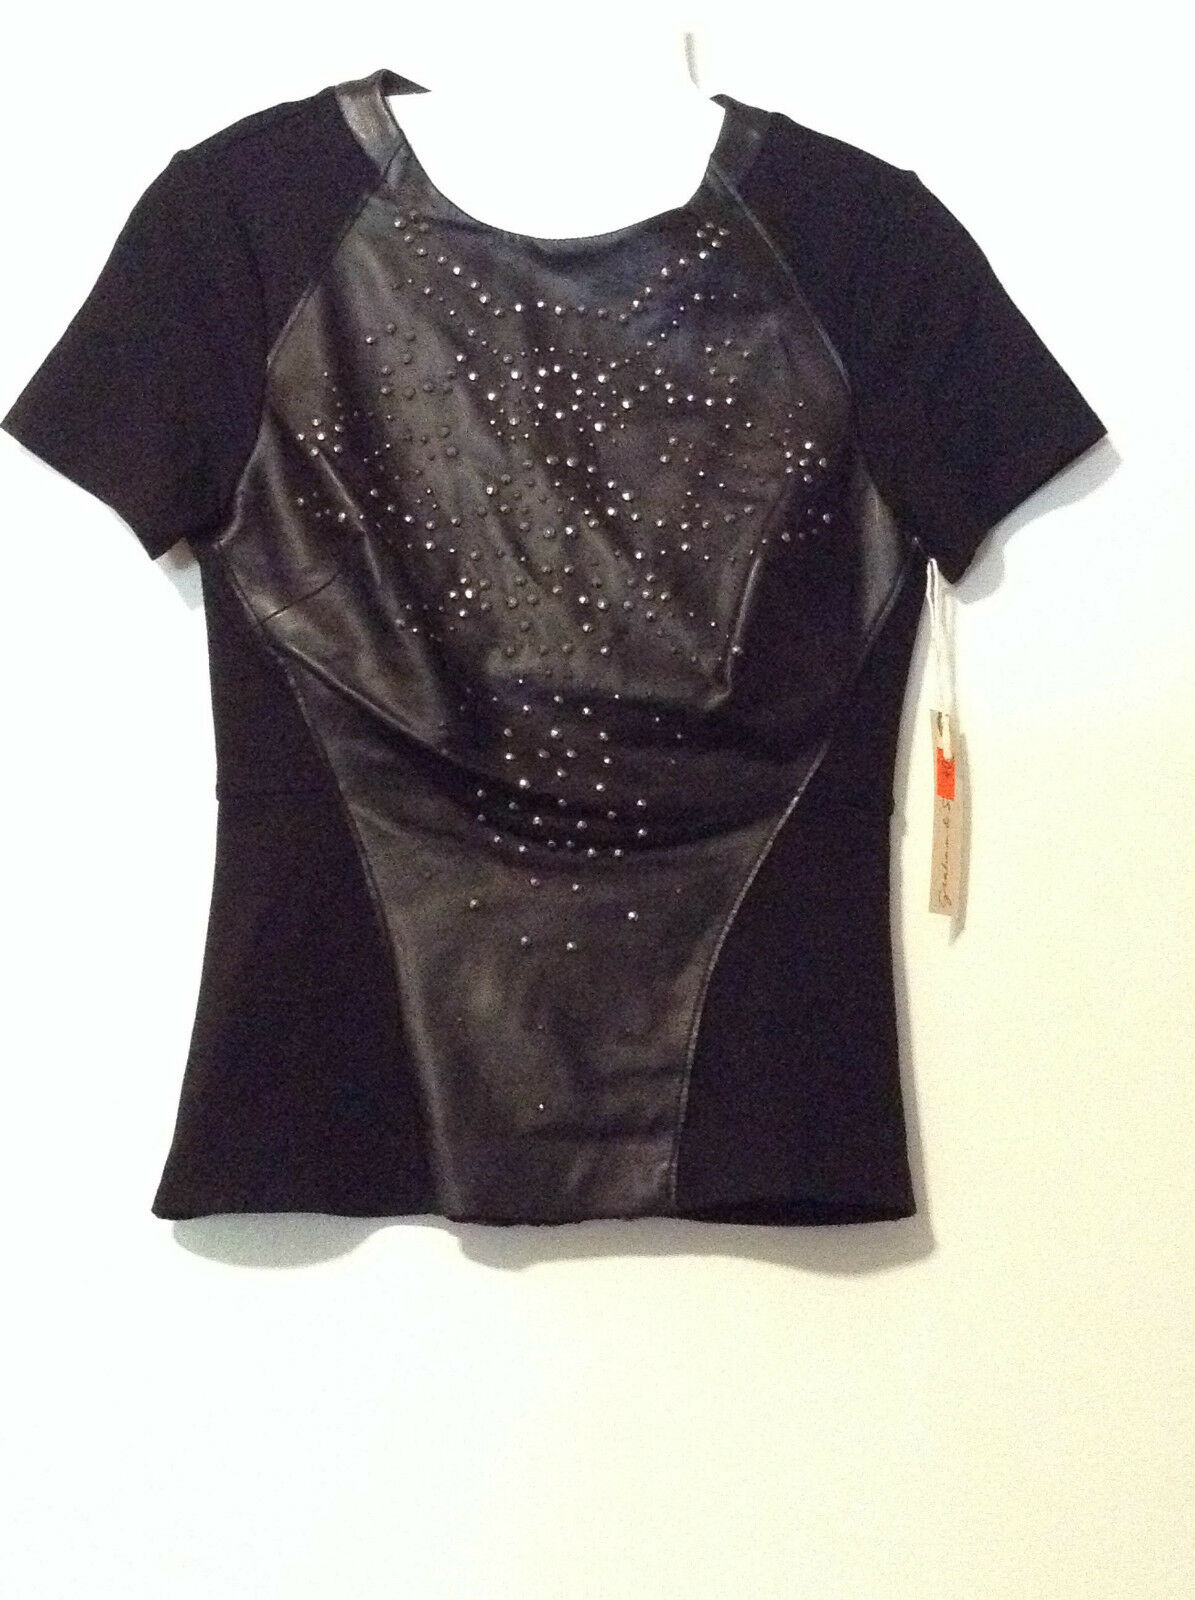 NEW WITH TAGS    Ladies Graham & Spencer schwarz Leather Studded Top MSRP